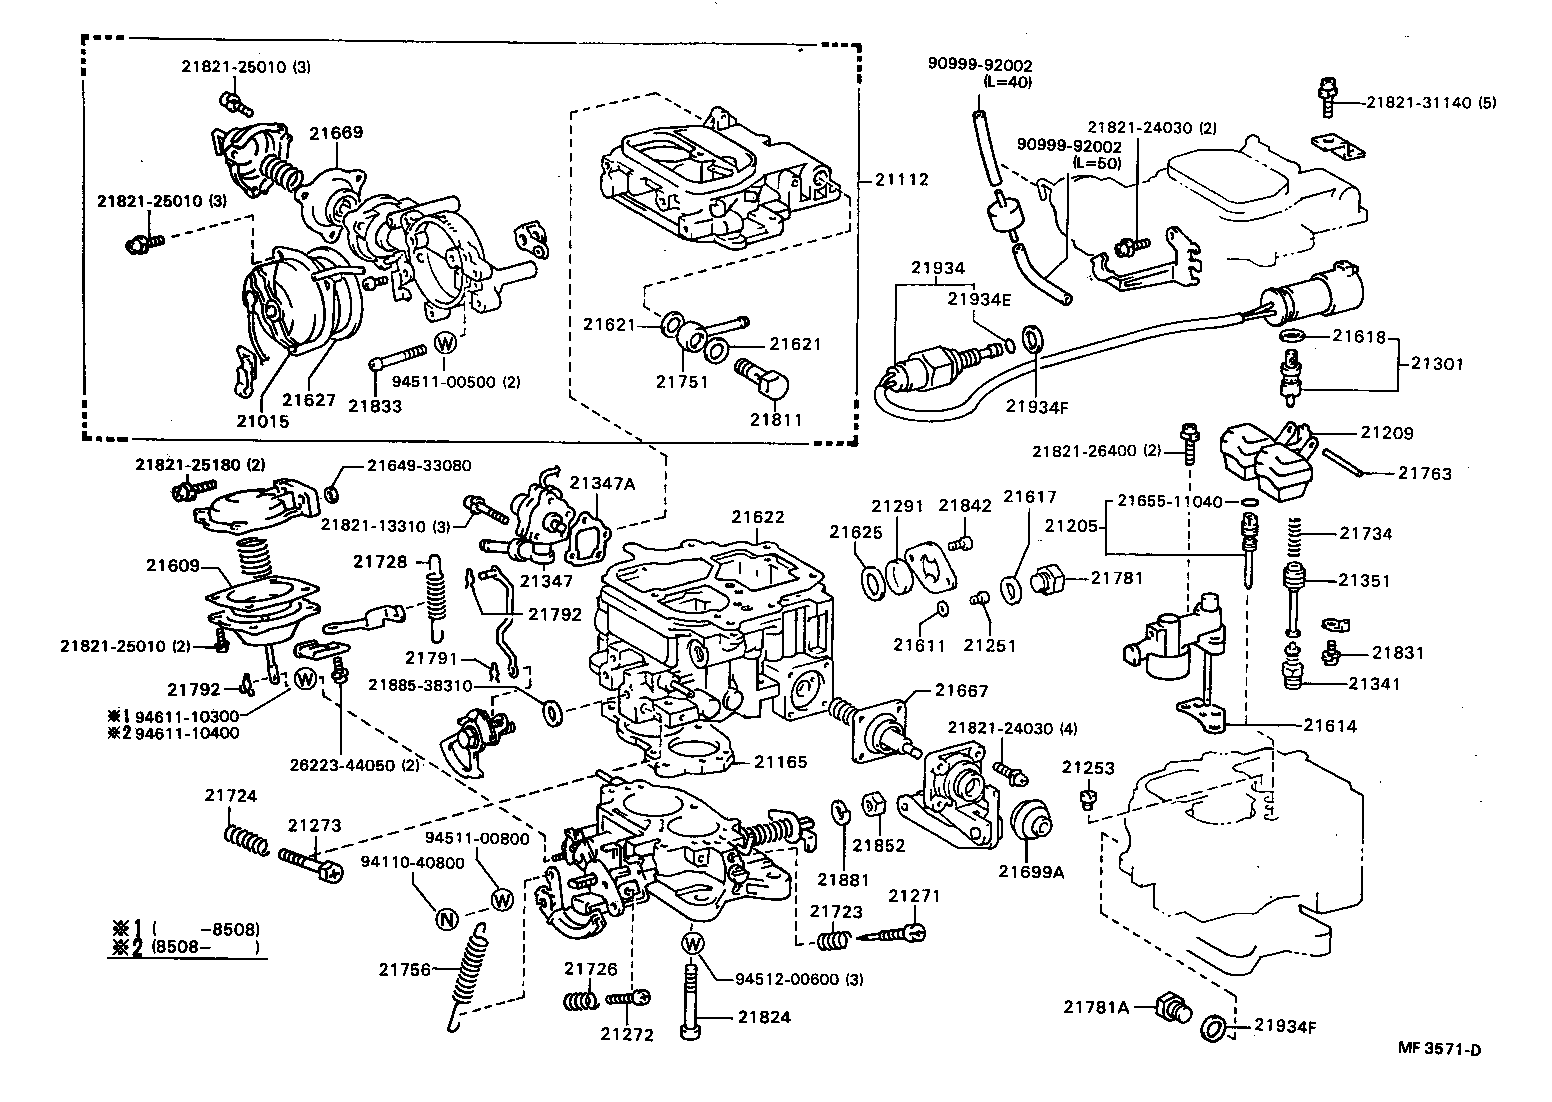 1988 Toyota 22re Engine Diagram • Wiring Diagram For Free